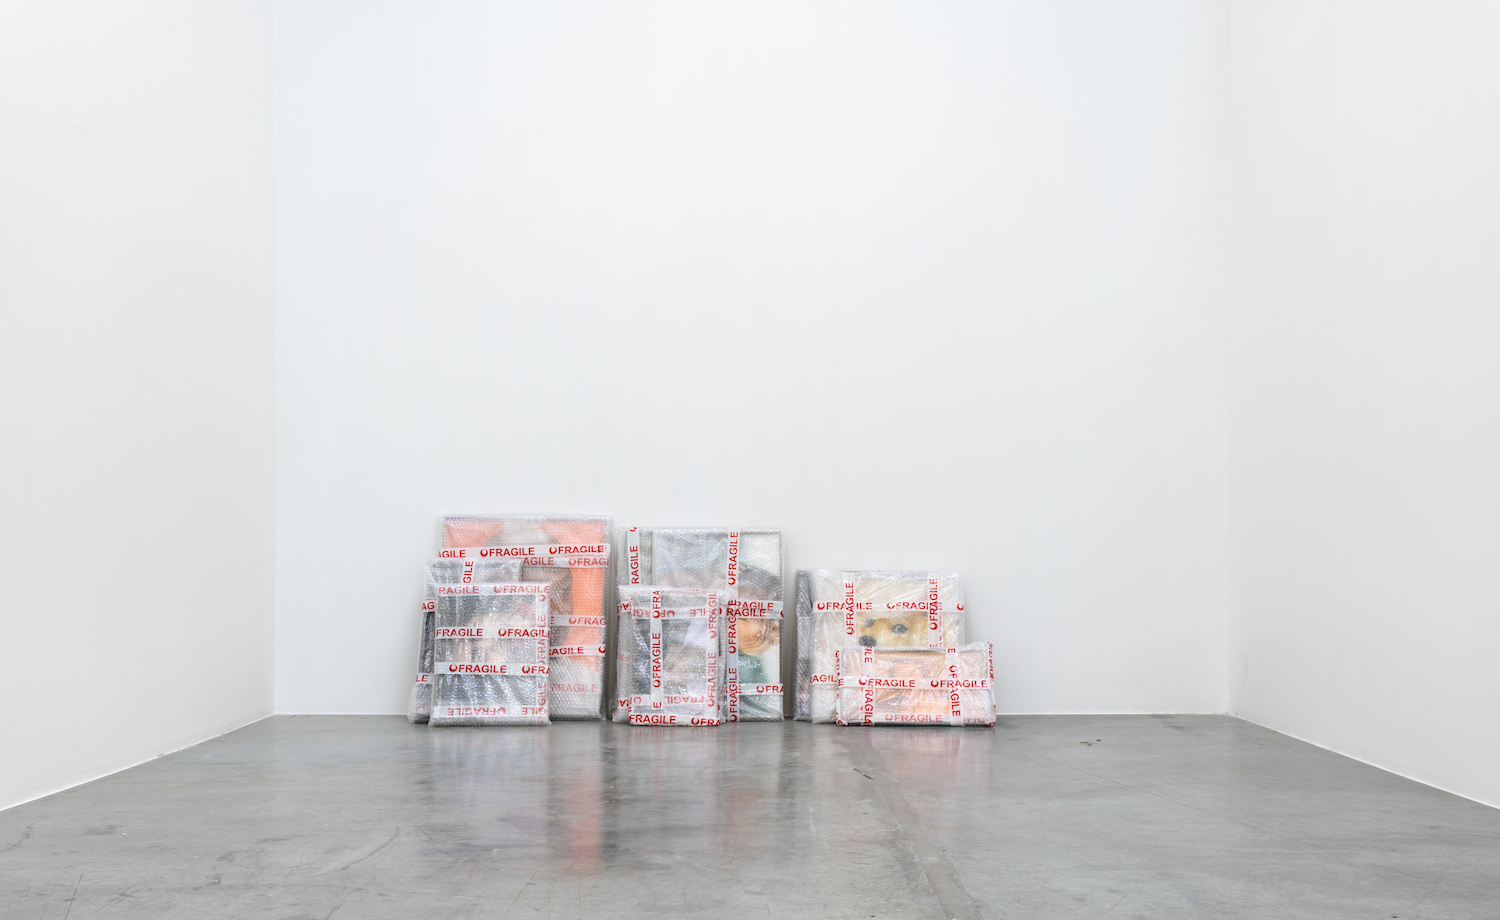 TOP 10 MIDDLE EASTERN ART 2018 Inkjet prints on Hahnemühle, wood, bubble wrap, tape Framed and bubble wrapped prints of various crying memes Dimensions variable